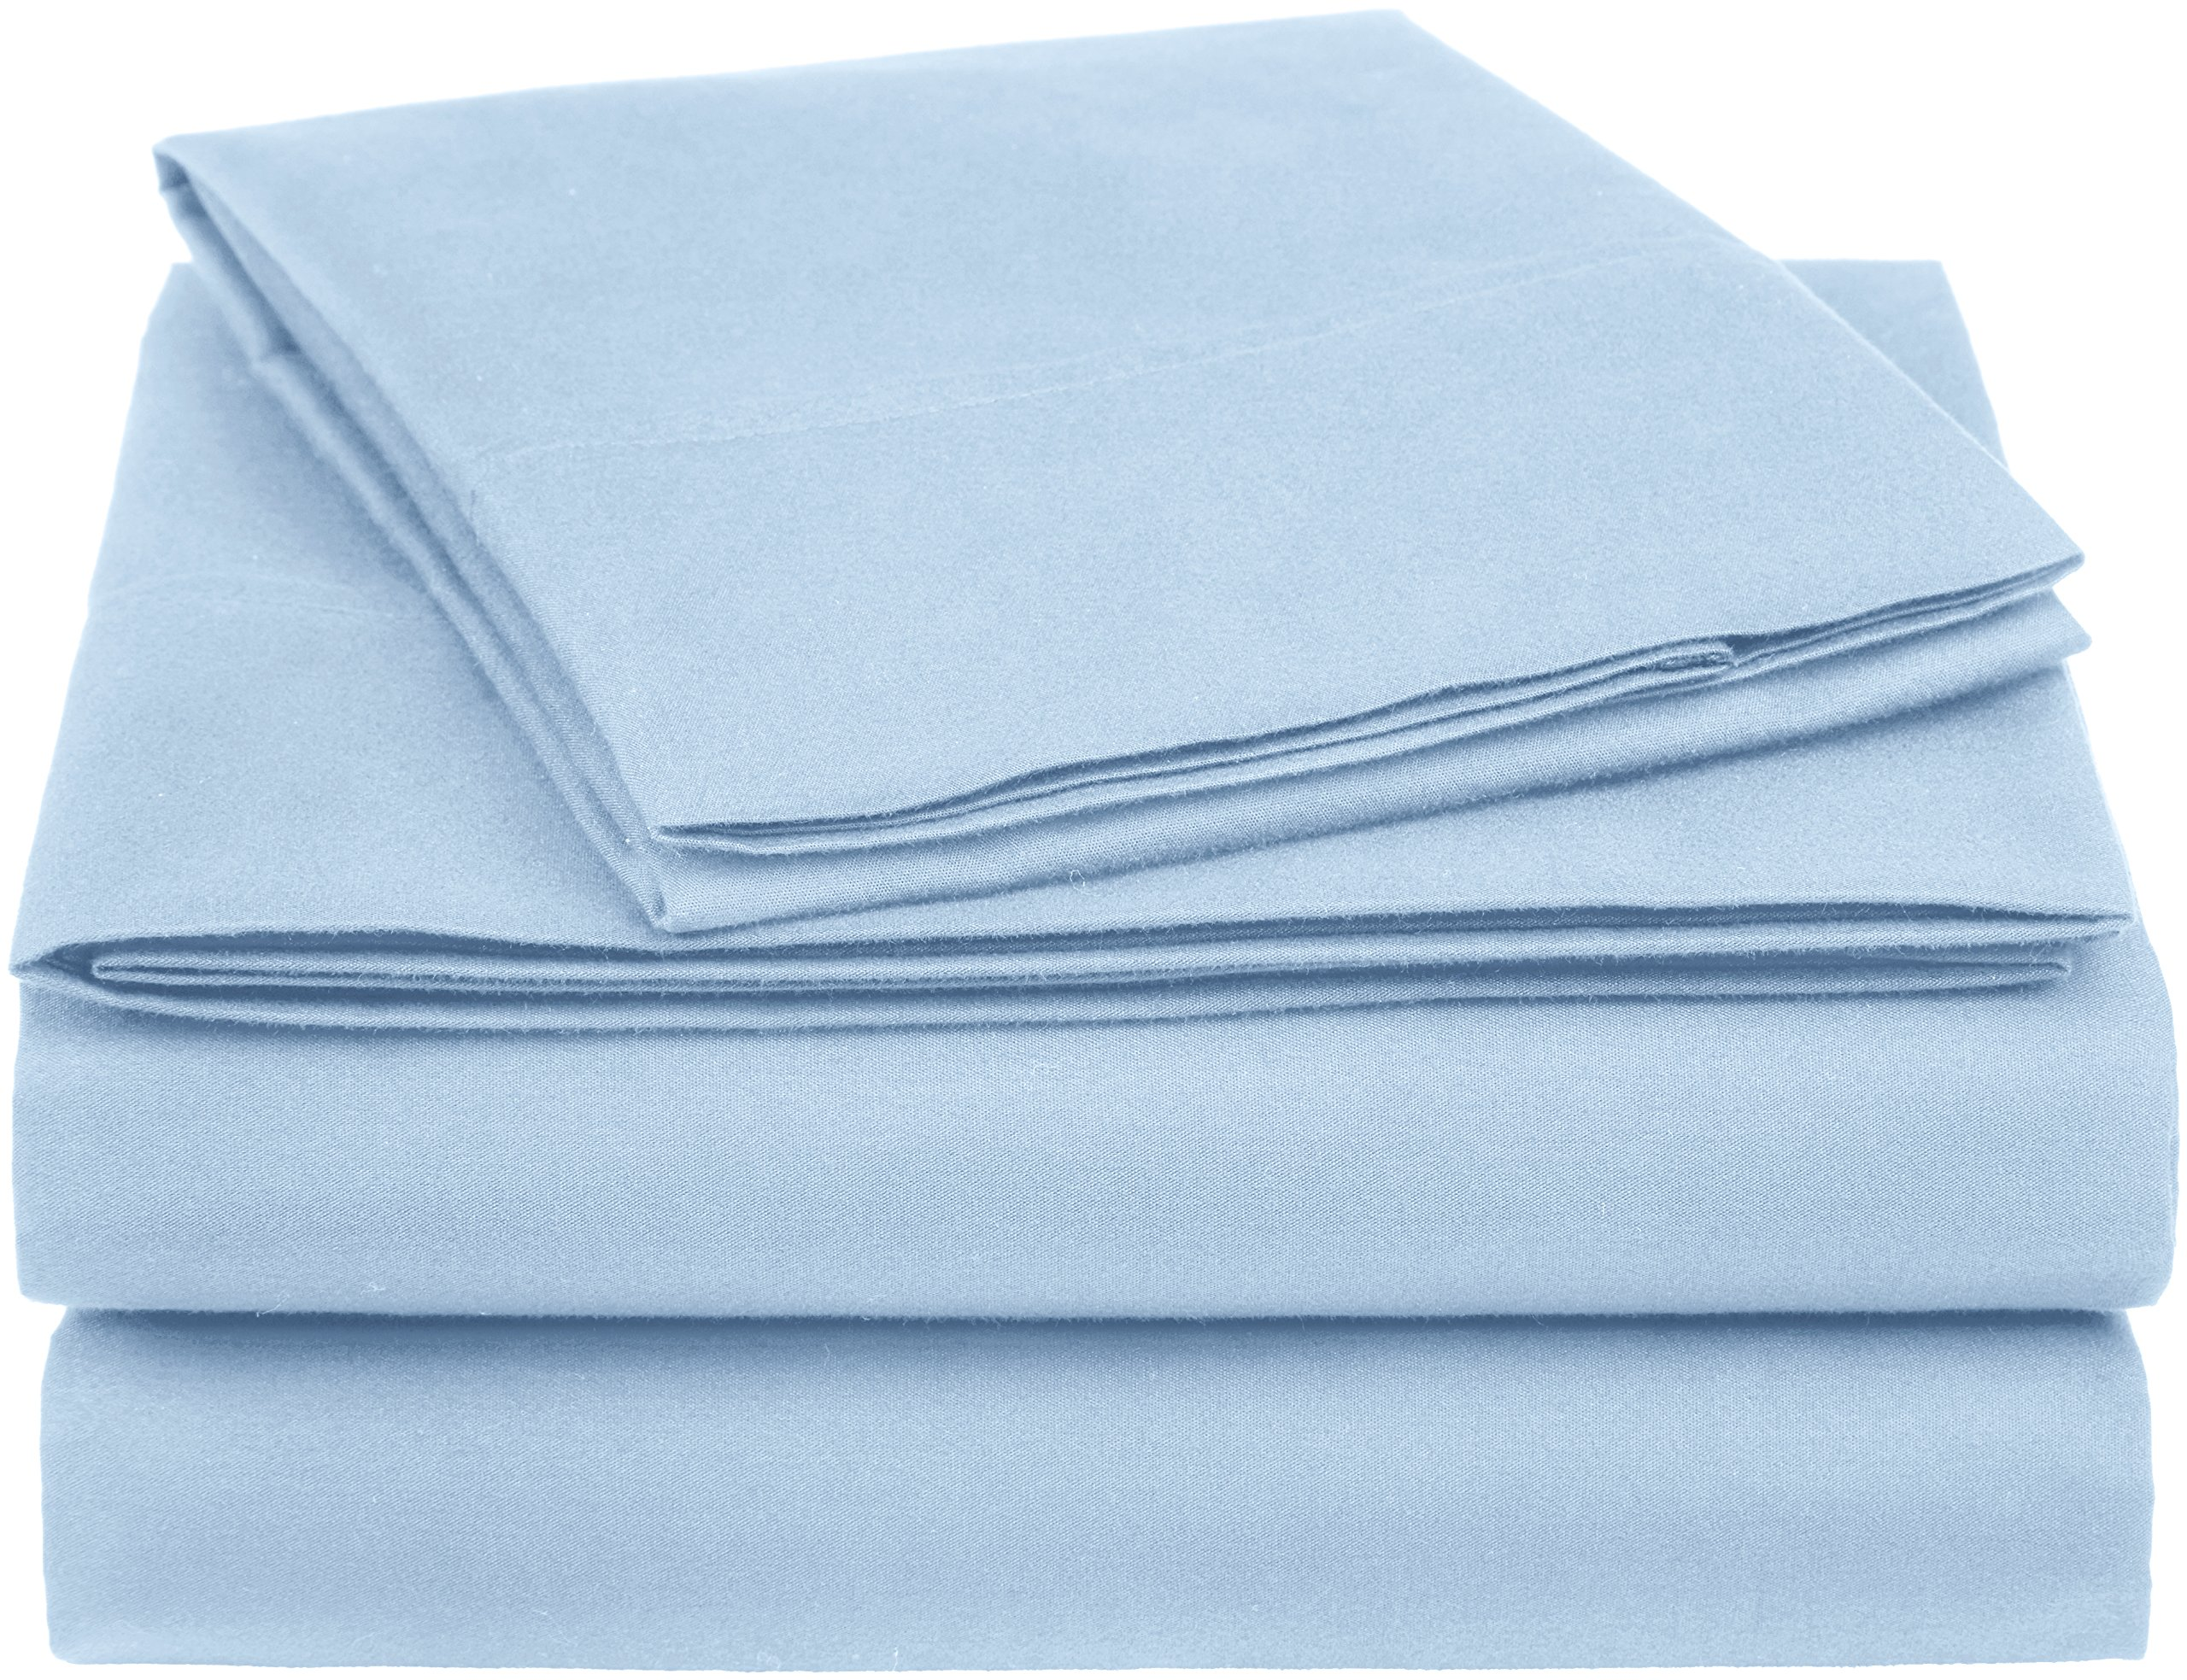 AmazonBasics Essential Cotton Blend Bed Sheet Set, Twin, Smoke Blue - Twin set includes a flat sheet (68 by 96 inches), fitted sheet (39 by 75 by 16 inches), and pillowcase (20 by 32 inches); 4-inch Z hem for added style Cotton-rich blend: made of 52% cotton and 48% polyester; fast drying and wrinkle resistant 225 thread count for breathable comfort and strength - sheet-sets, bedroom-sheets-comforters, bedroom - 915ViKRlvzL -